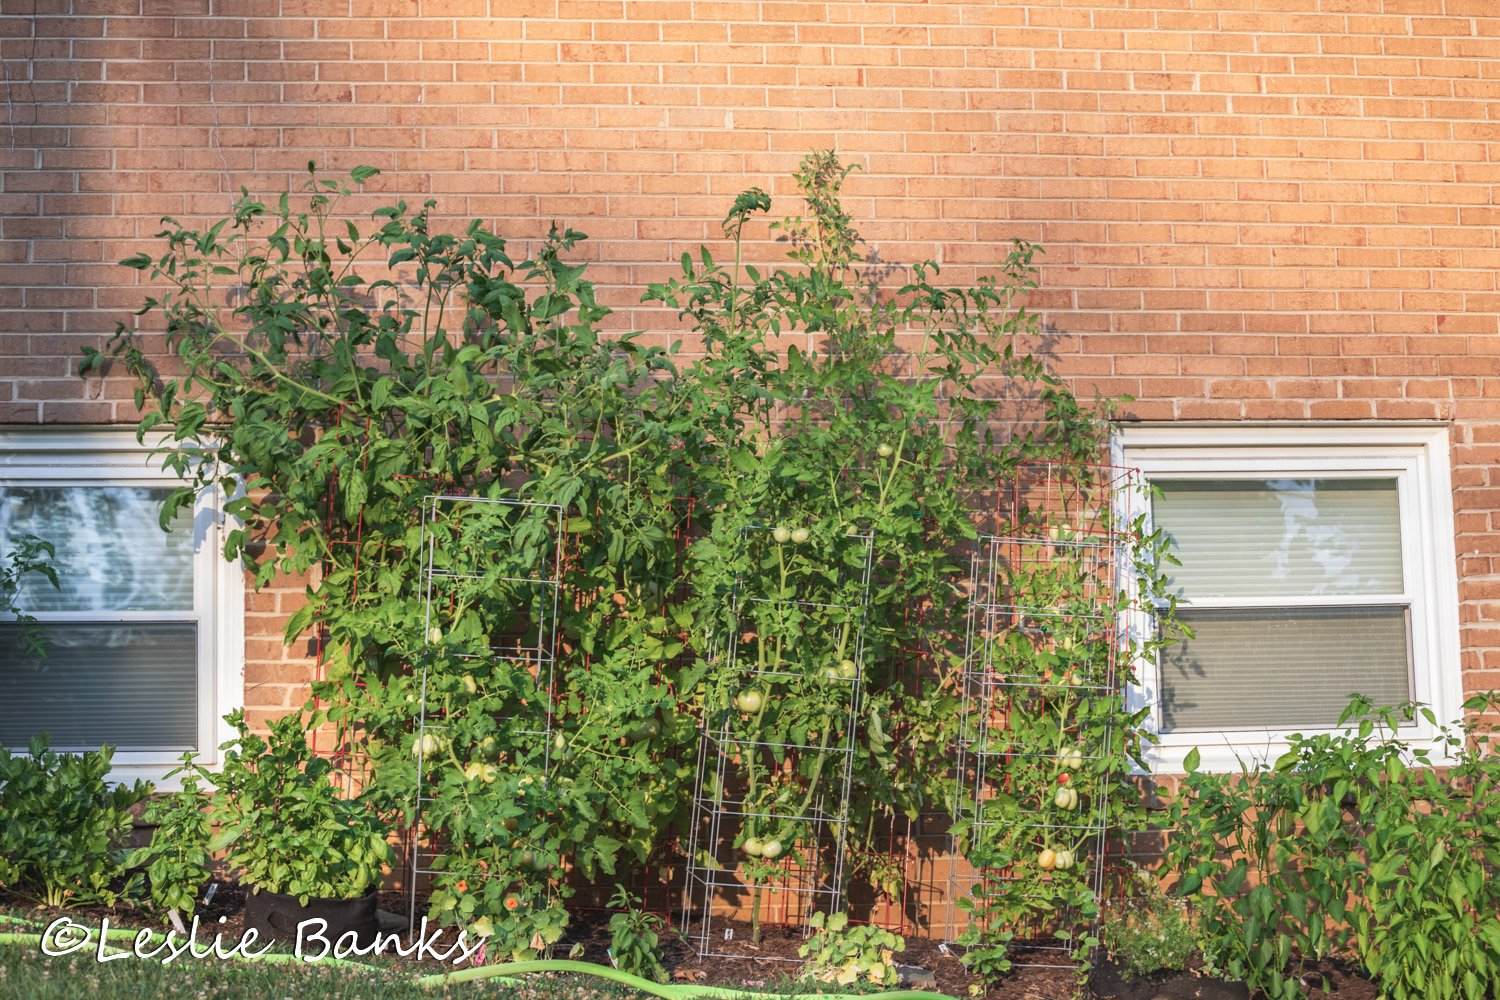 Tomato Bed in Summer